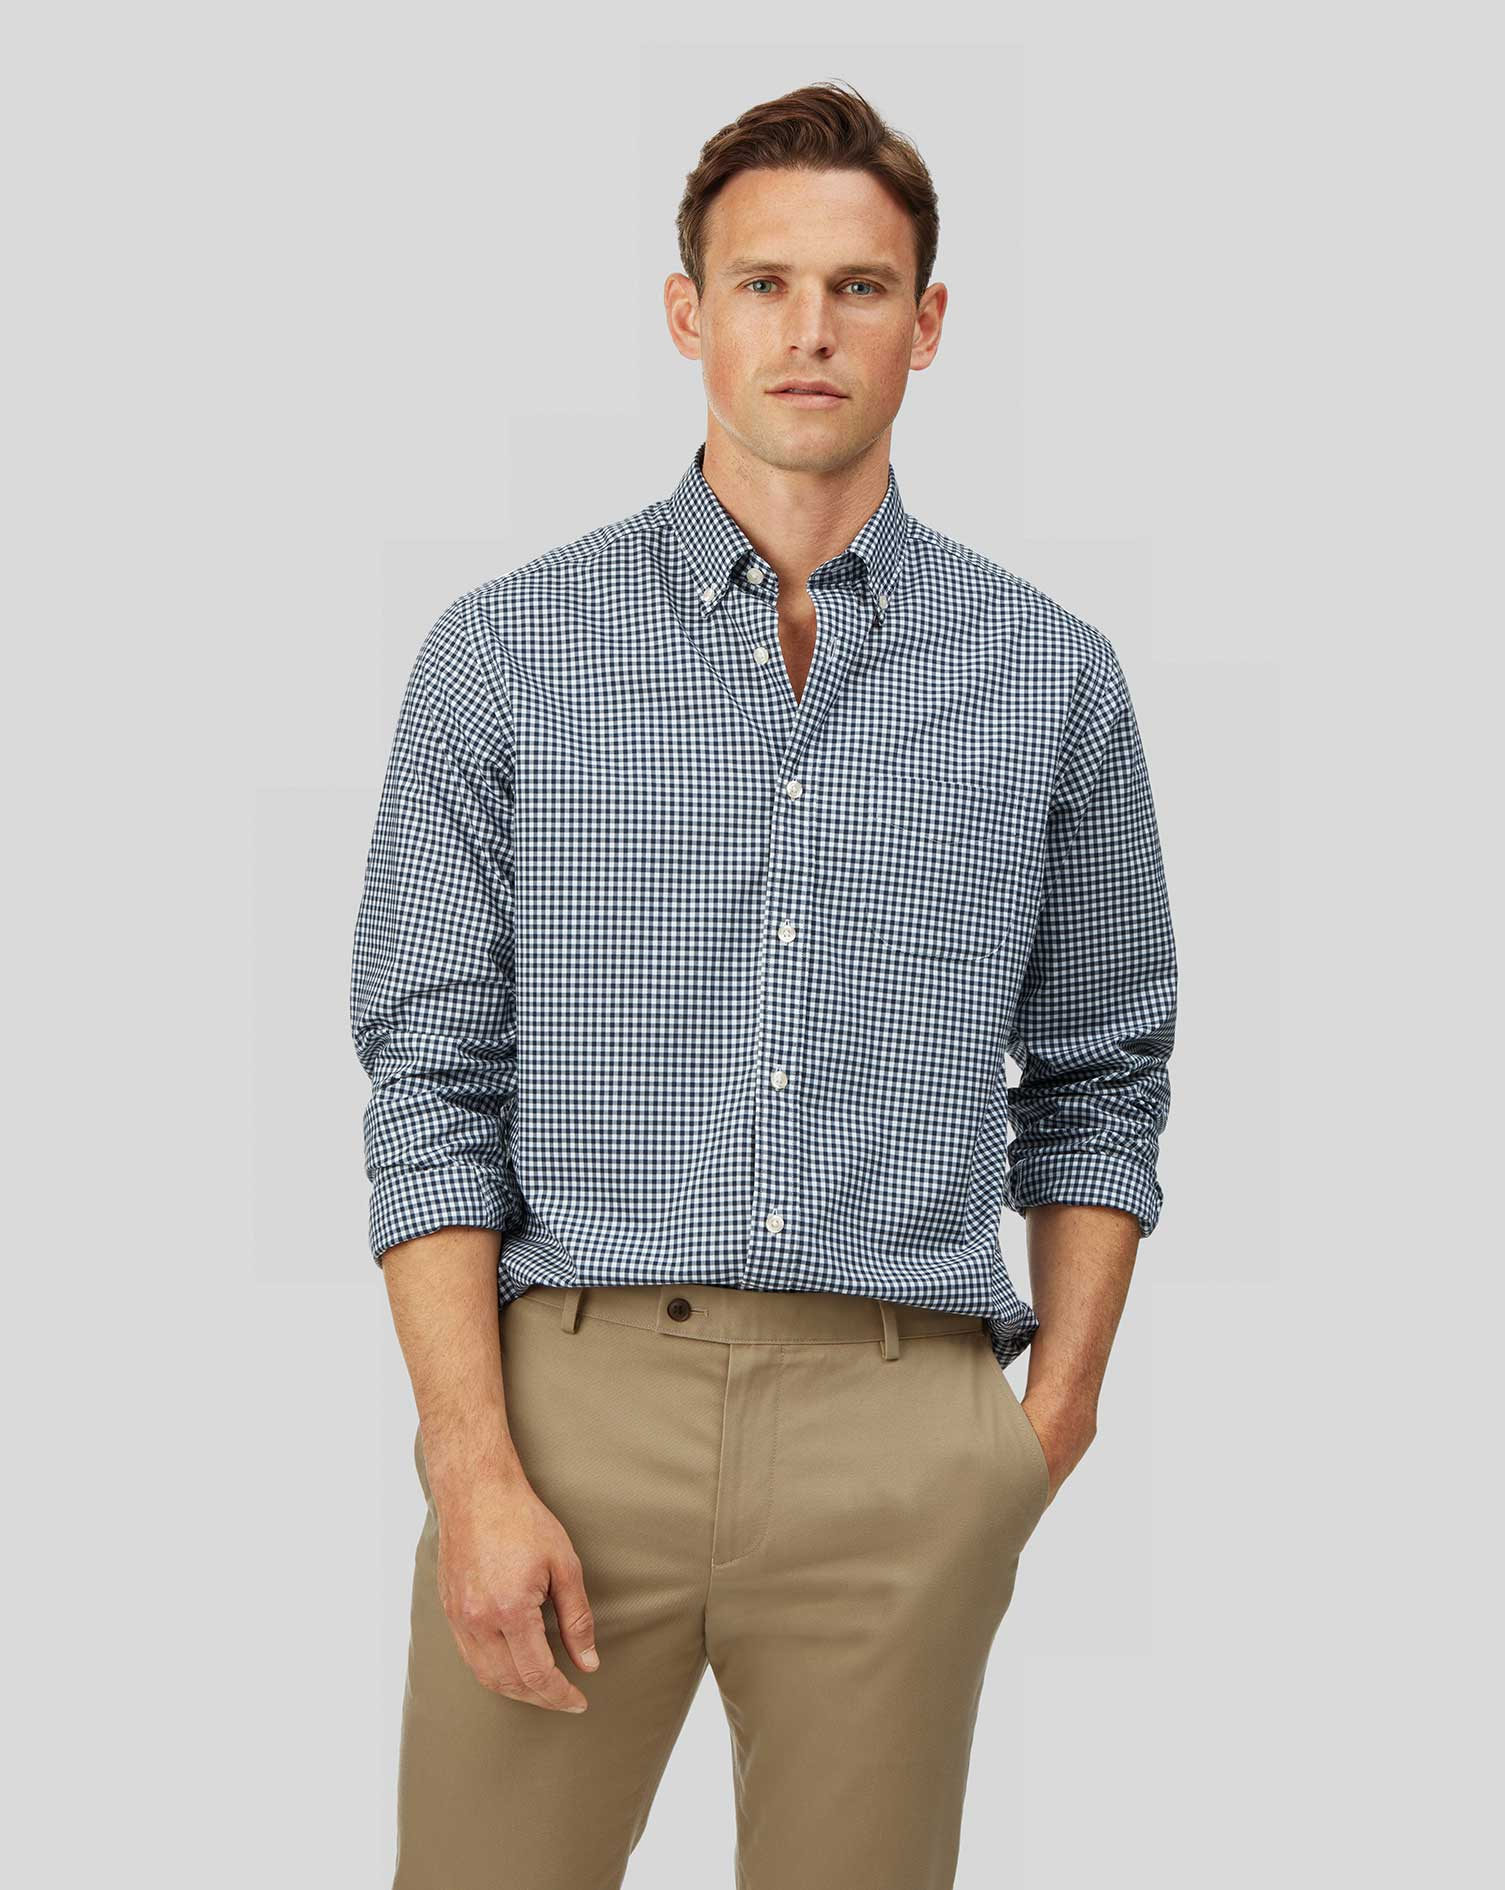 Cotton Classic Fit Soft Washed Non-Iron Stretch Poplin Gingham Navy Shirt